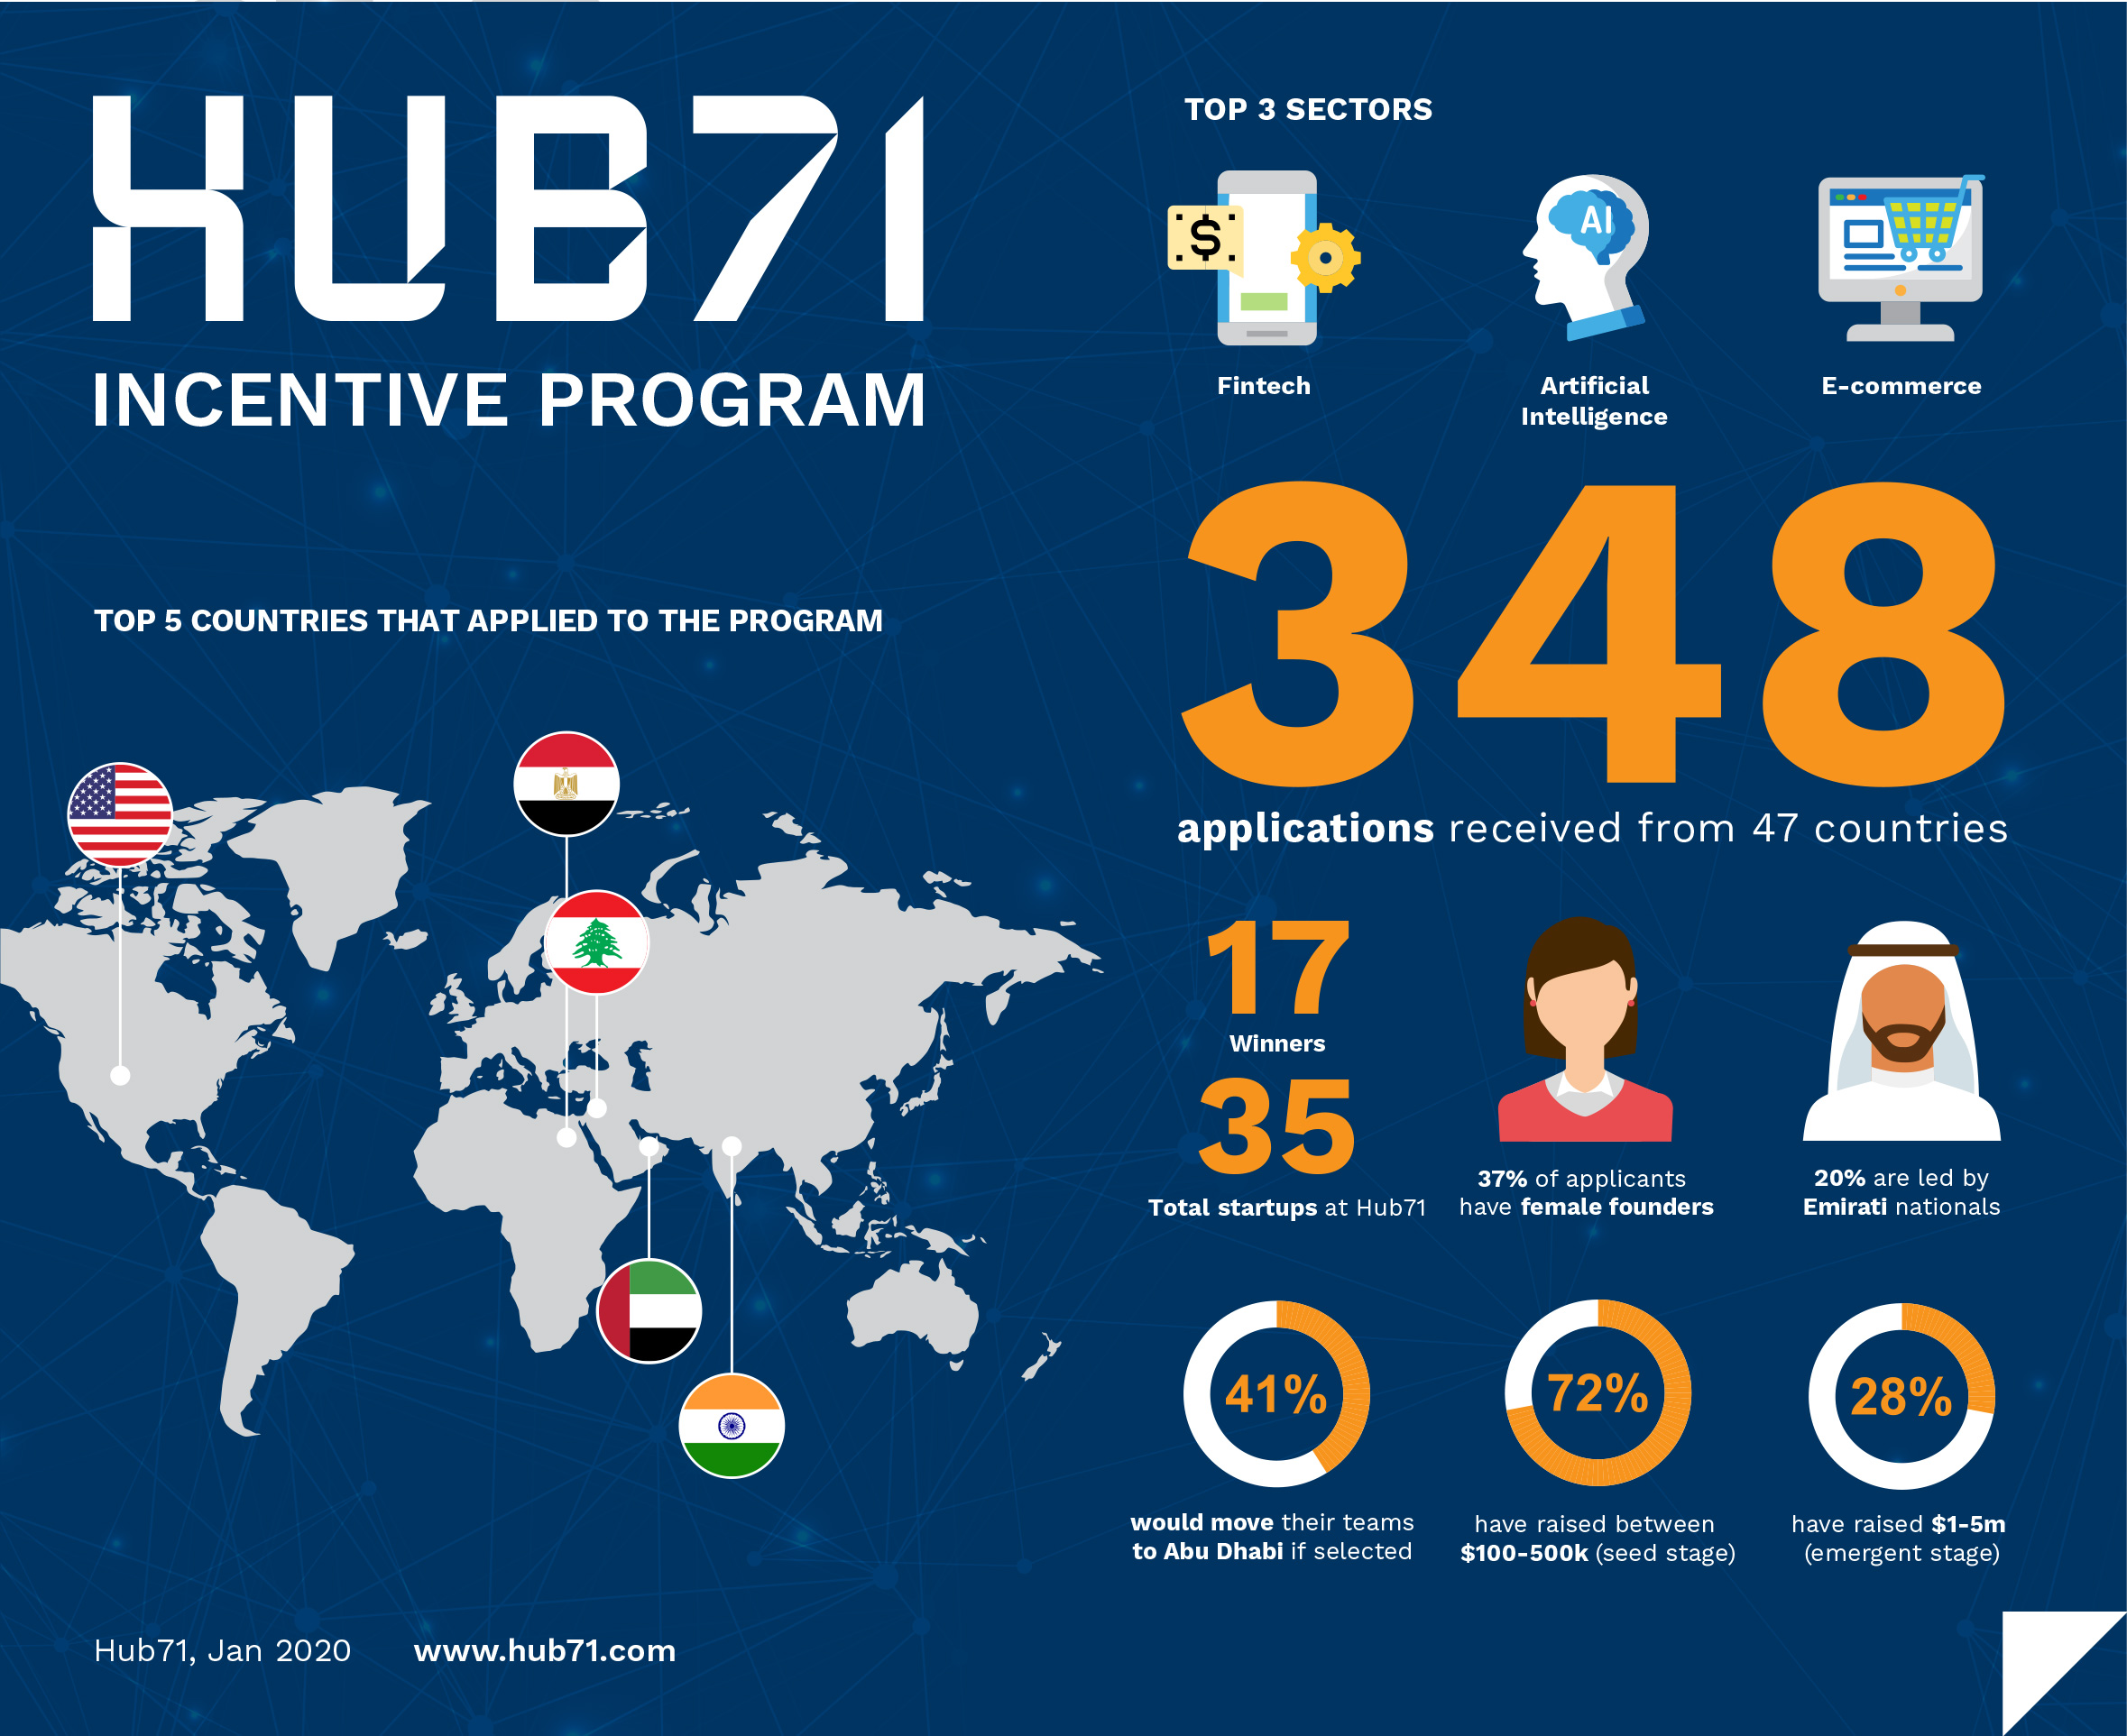 Photo: Hub71 launches programme to assist startups with AI tech, cloud services